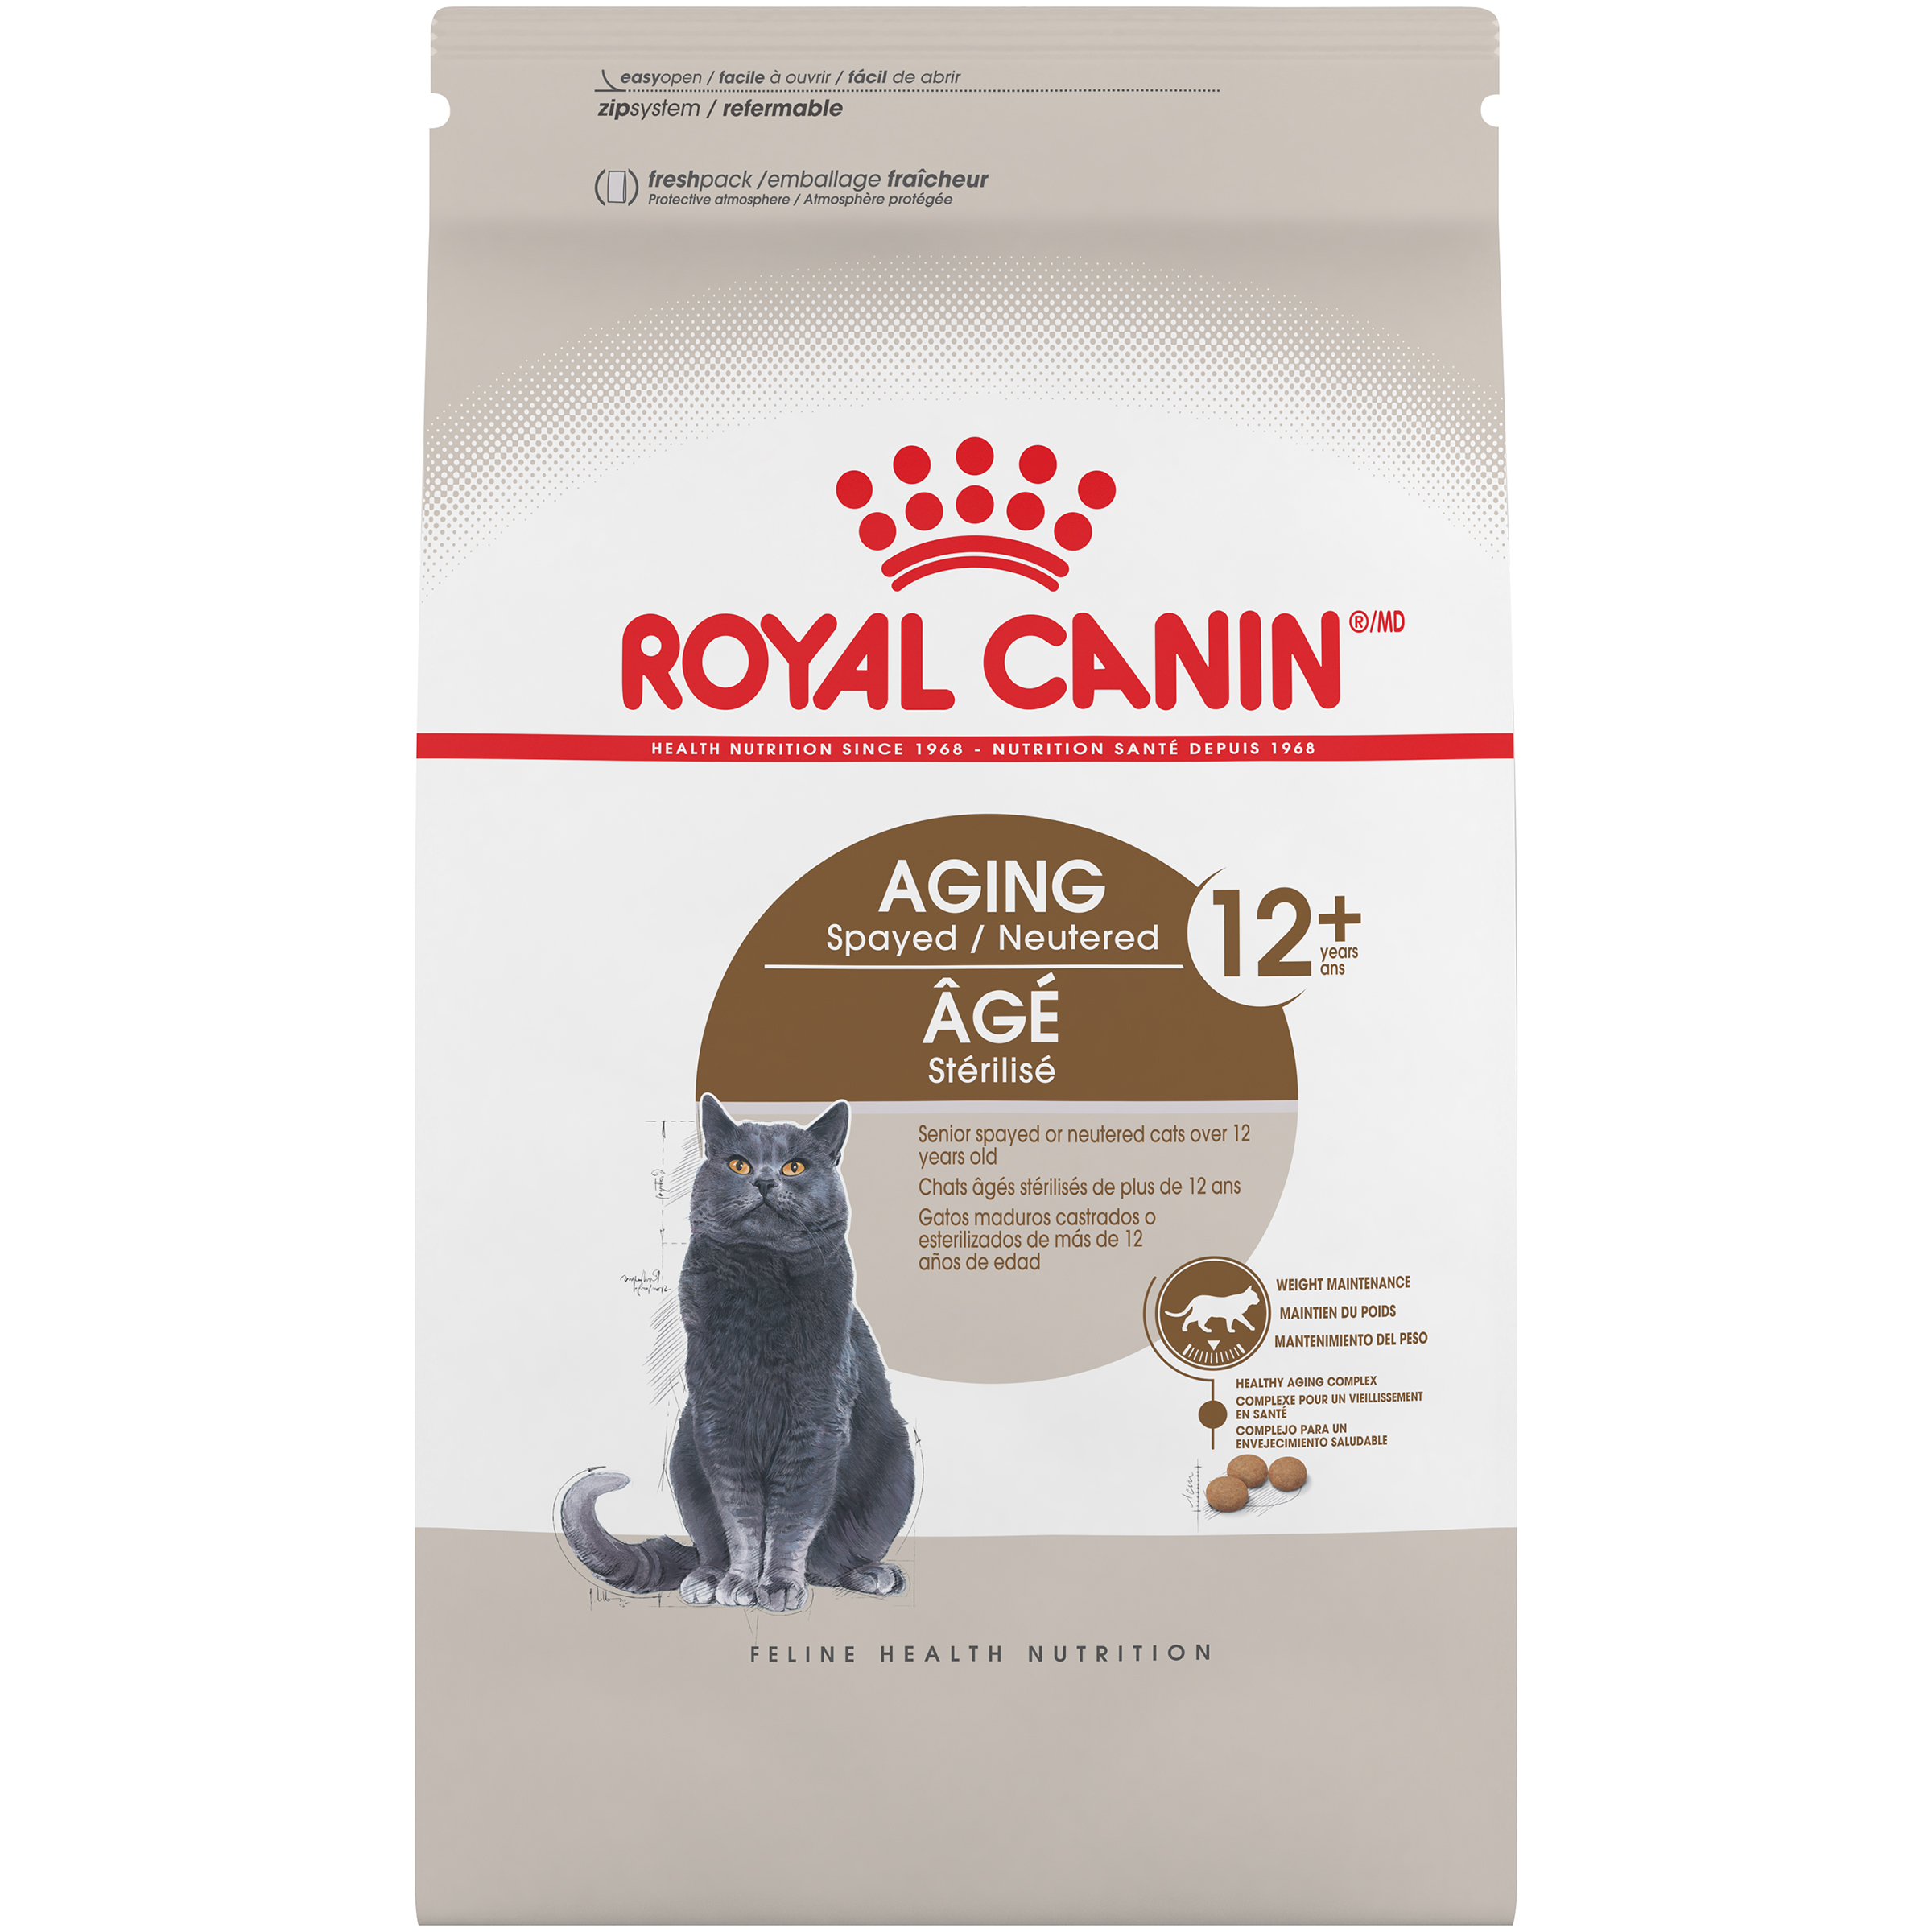 Aging Spayed / Neutered 12+ Dry Adult Cat Food